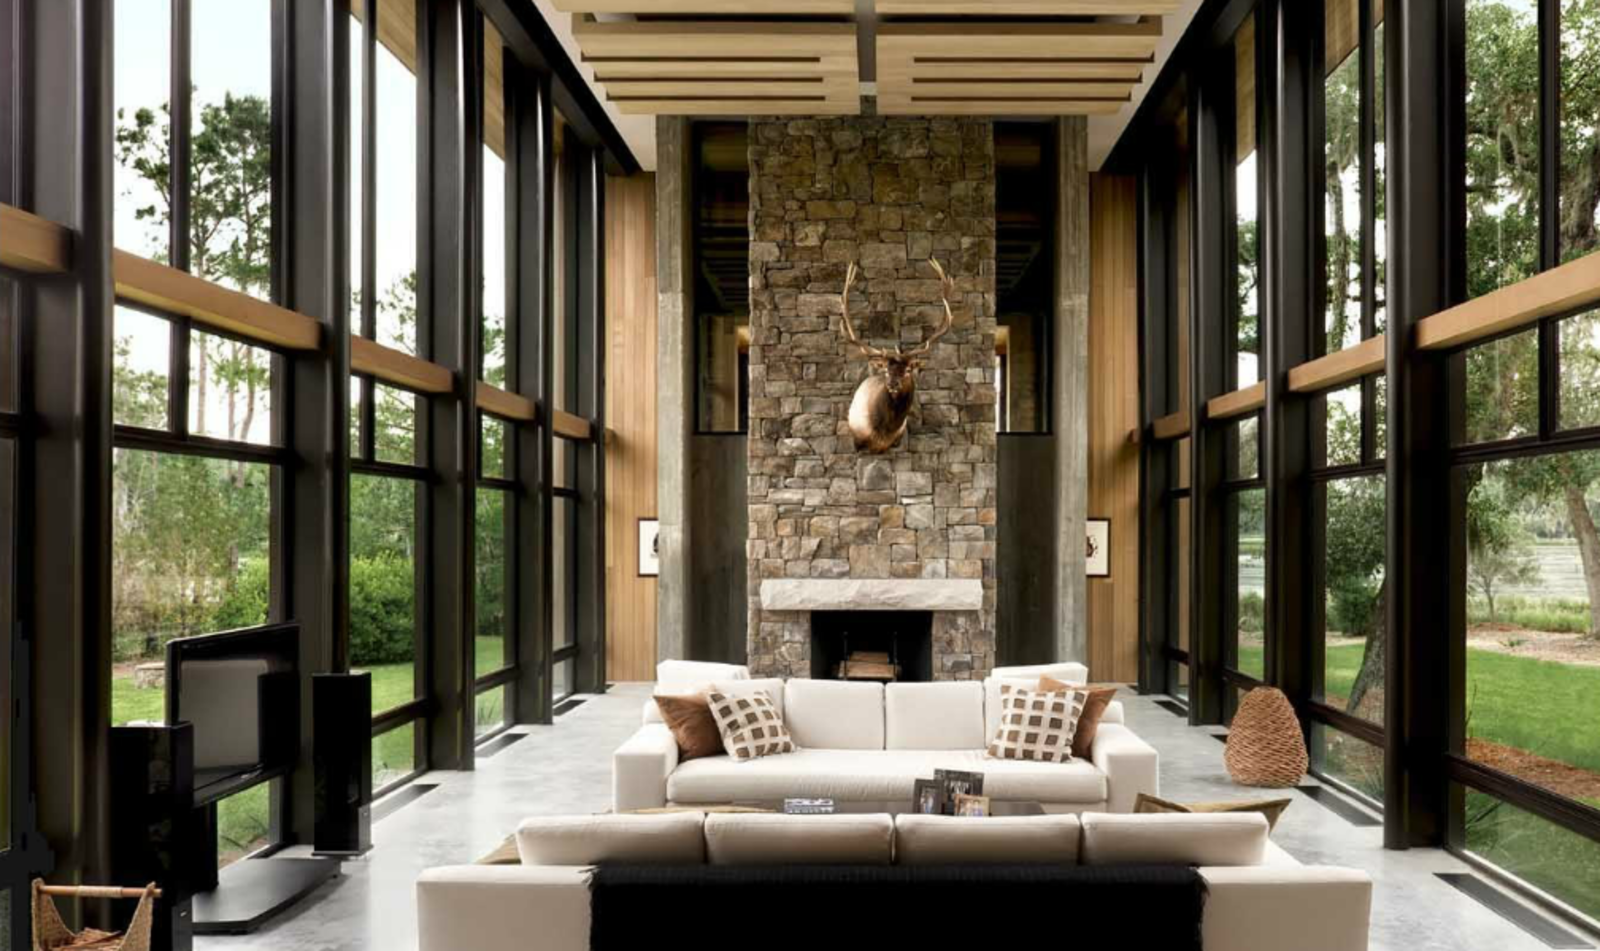 The grand, glass-walled great room is a loft-like space that incorporates living room and dining area. A bedroom and bathroom are located on a lofted mezzanine level, over the kitchen, pantry, and utility room.  97+ Modern Fireplace Ideas from A Modern Home in a South Carolina Marsh